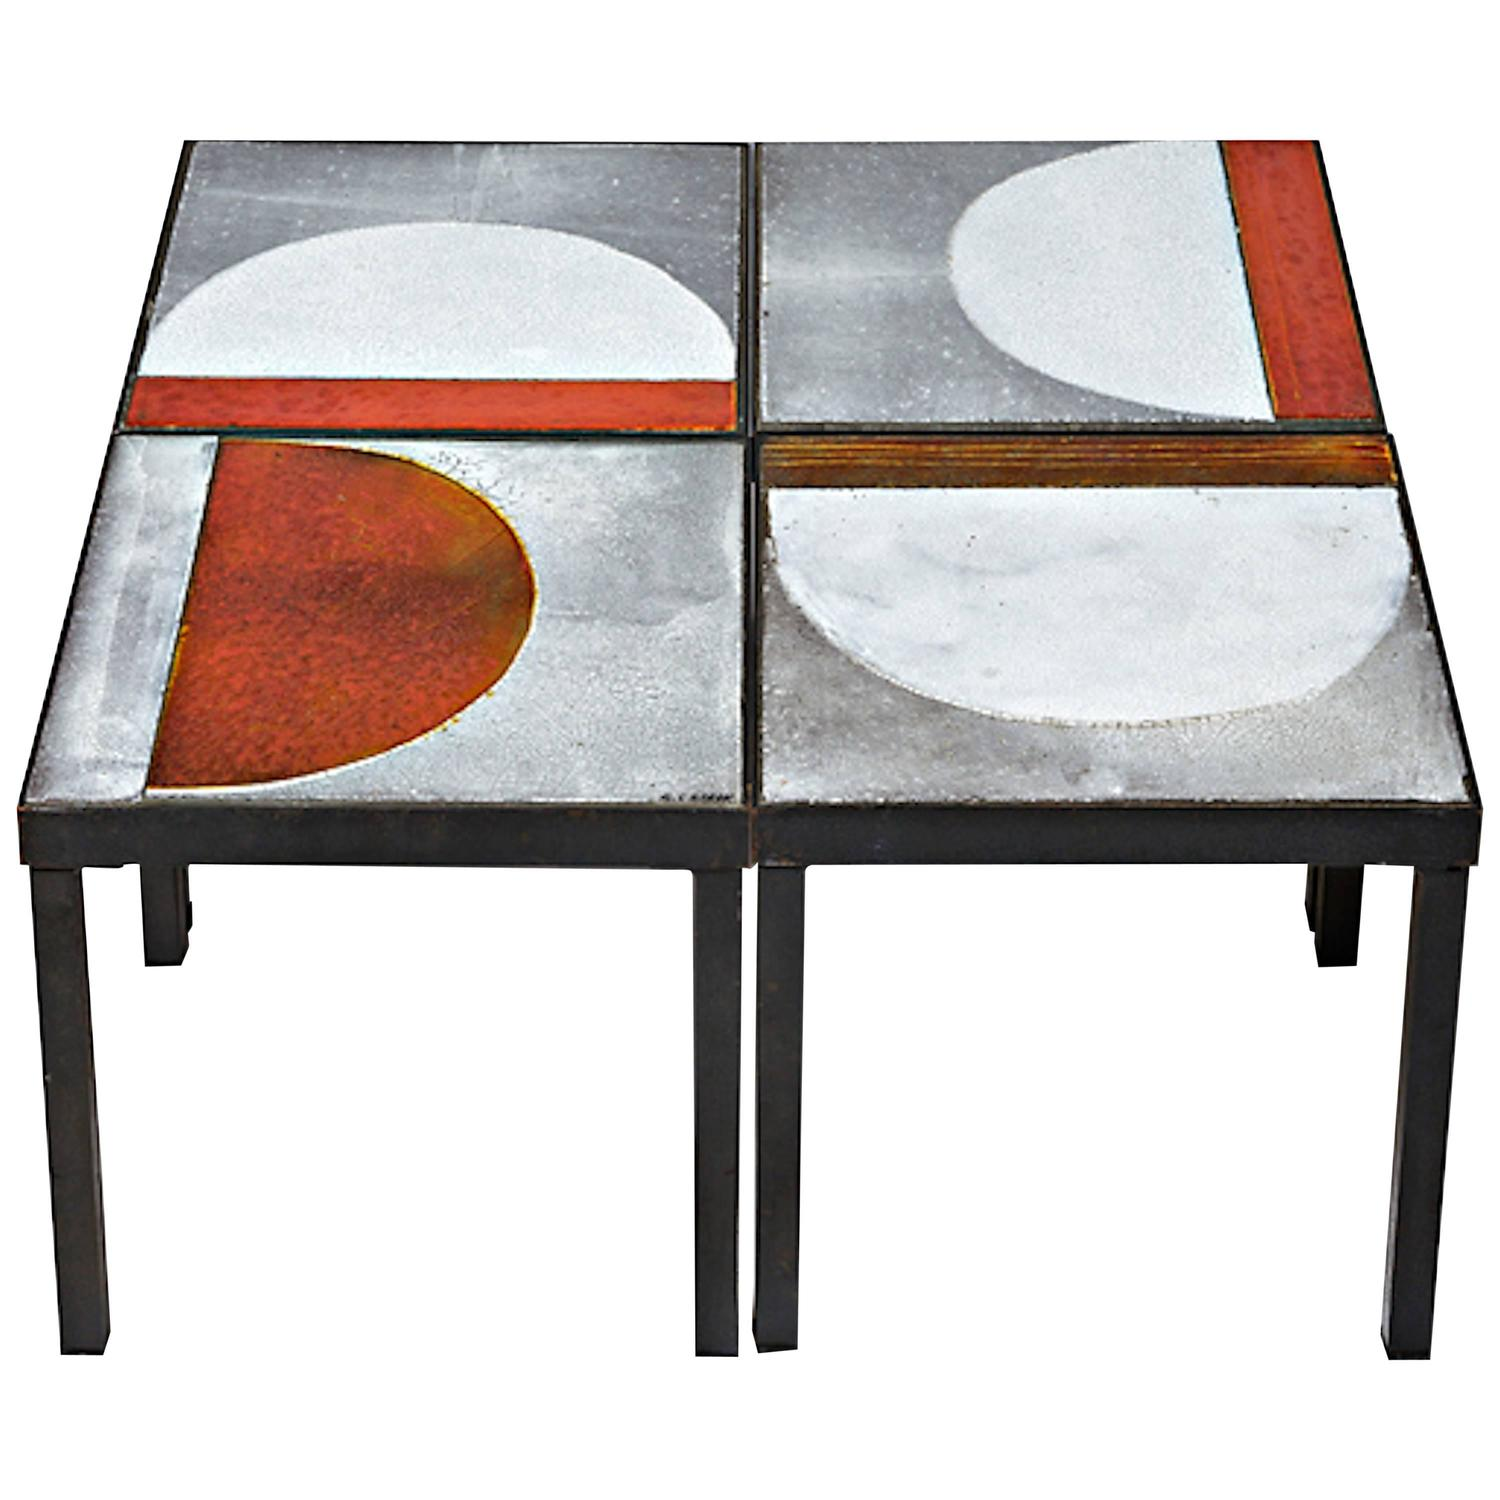 Unique Coffee Table By Roger Capron Vallauris France For Sale At